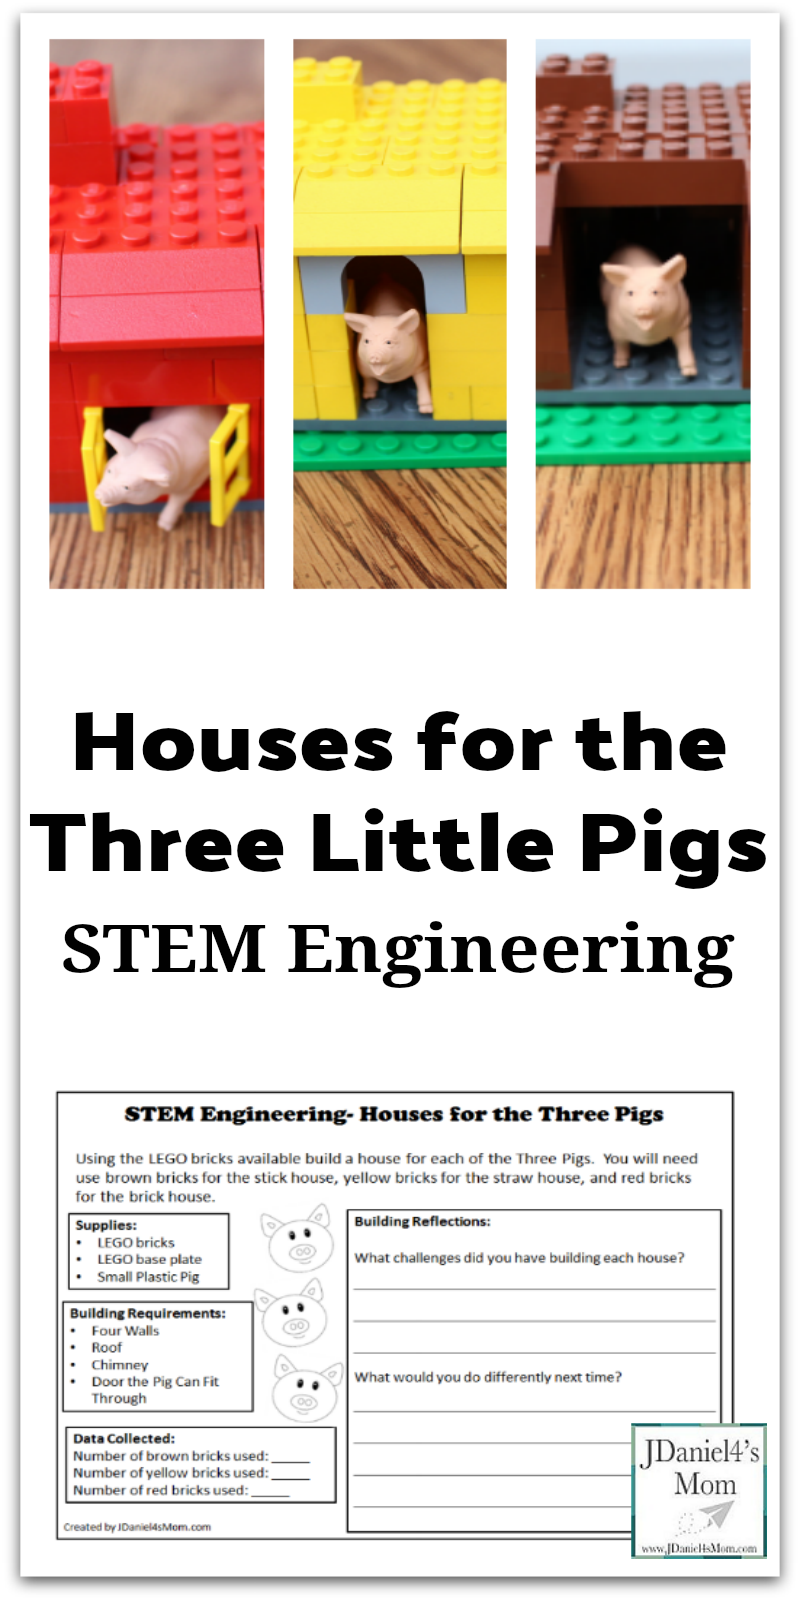 Stem Engineering Houses For The Three Pigs With Lego